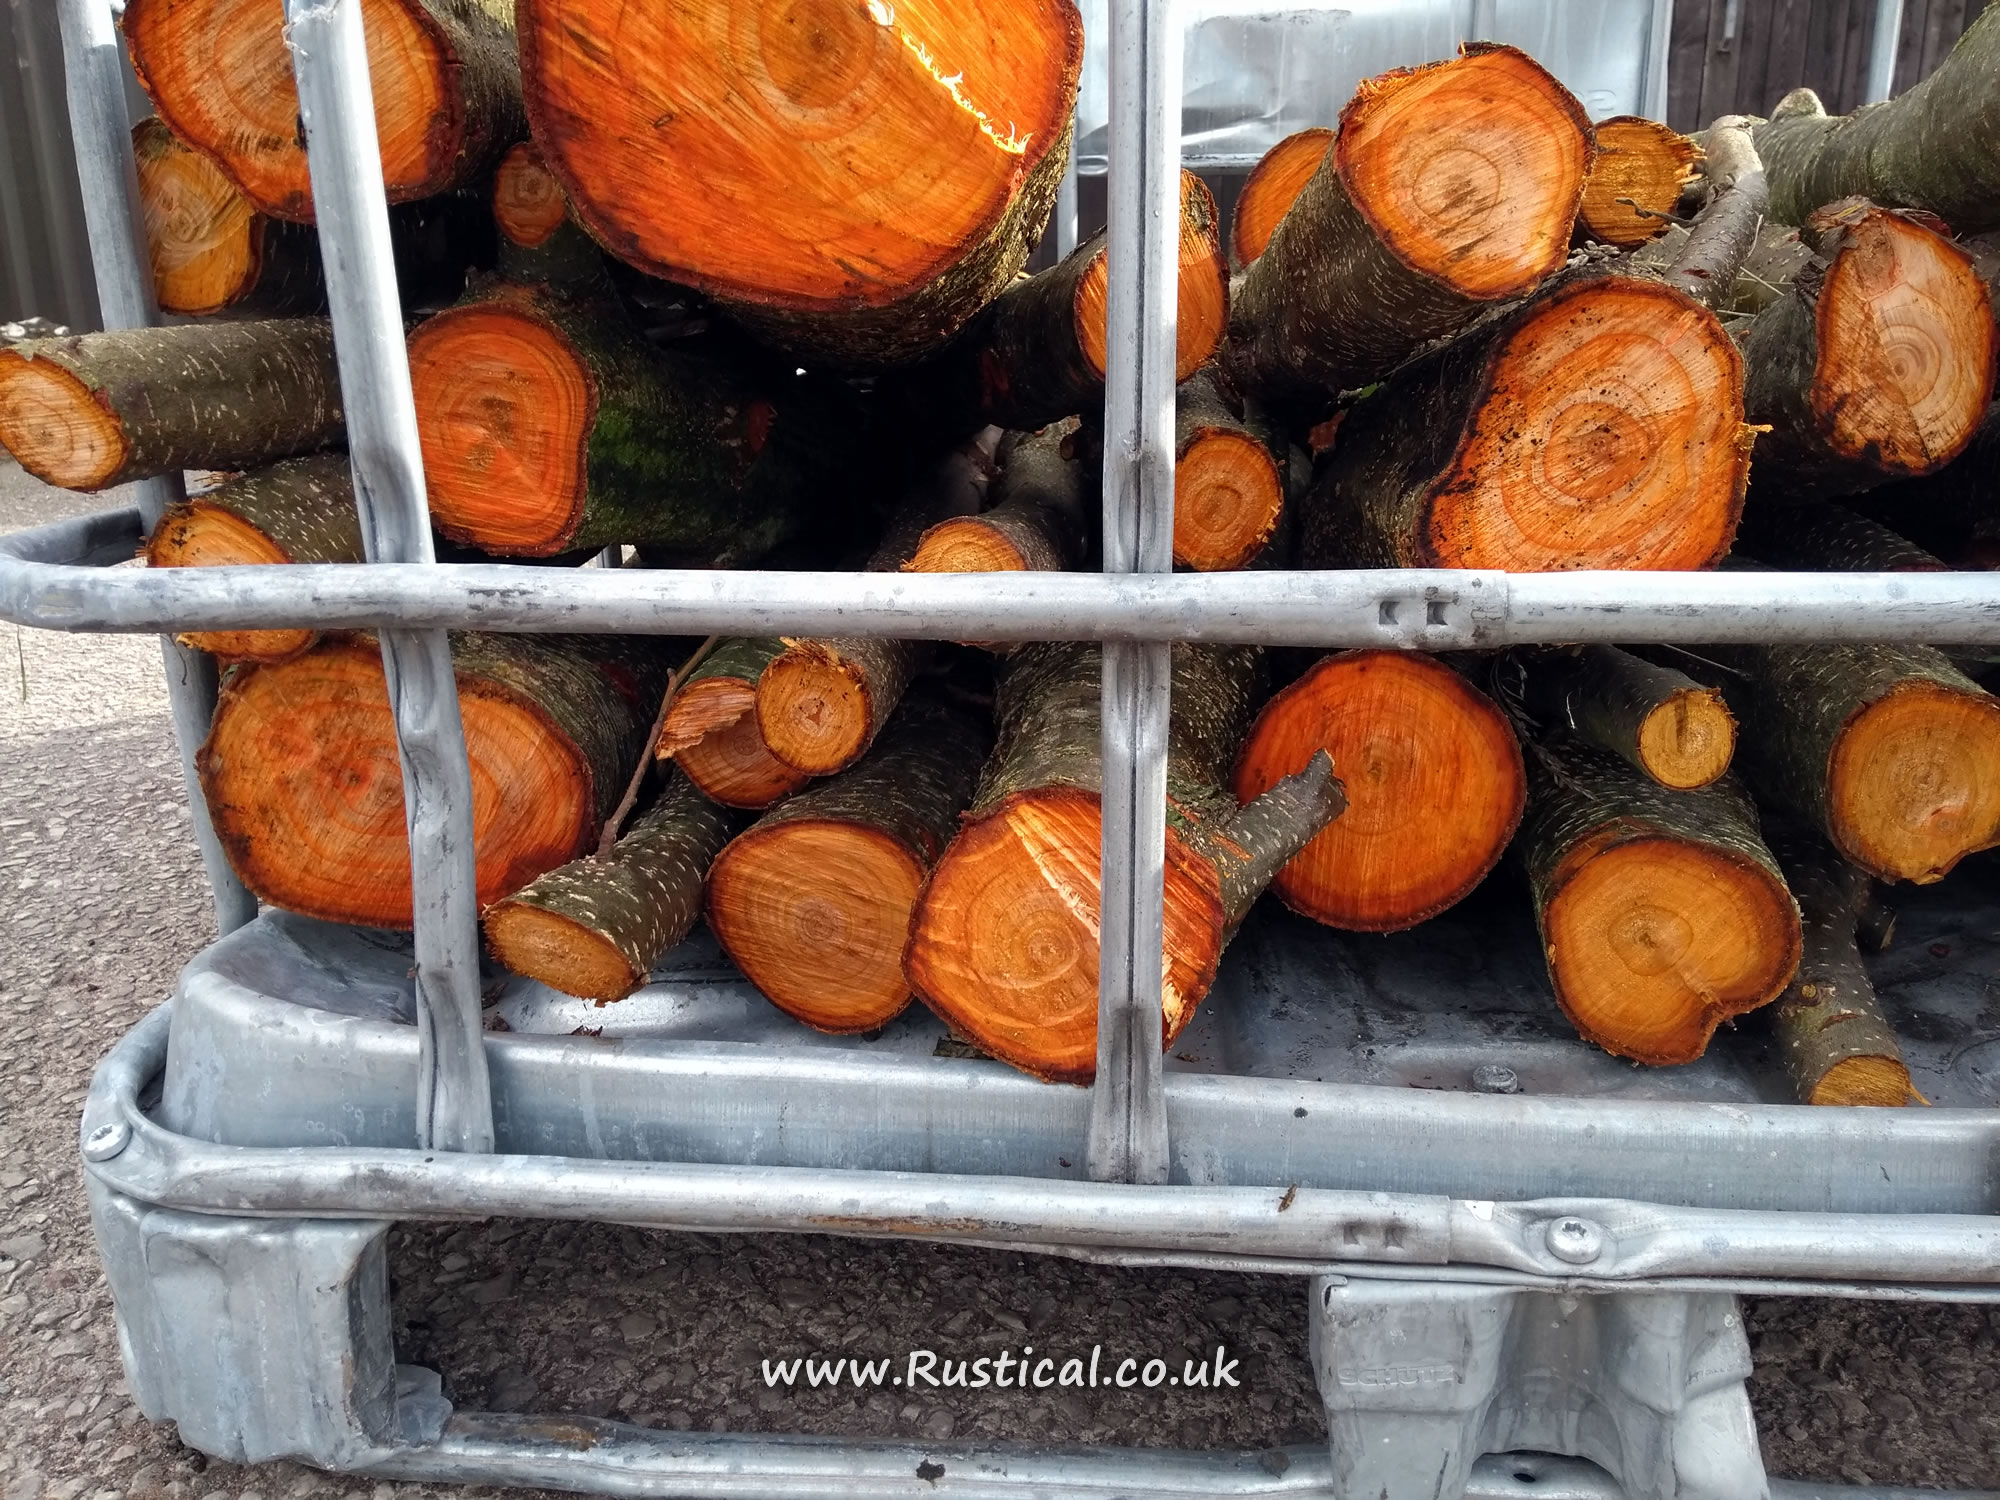 Coppiced Alder stacked in an IBC crate to season